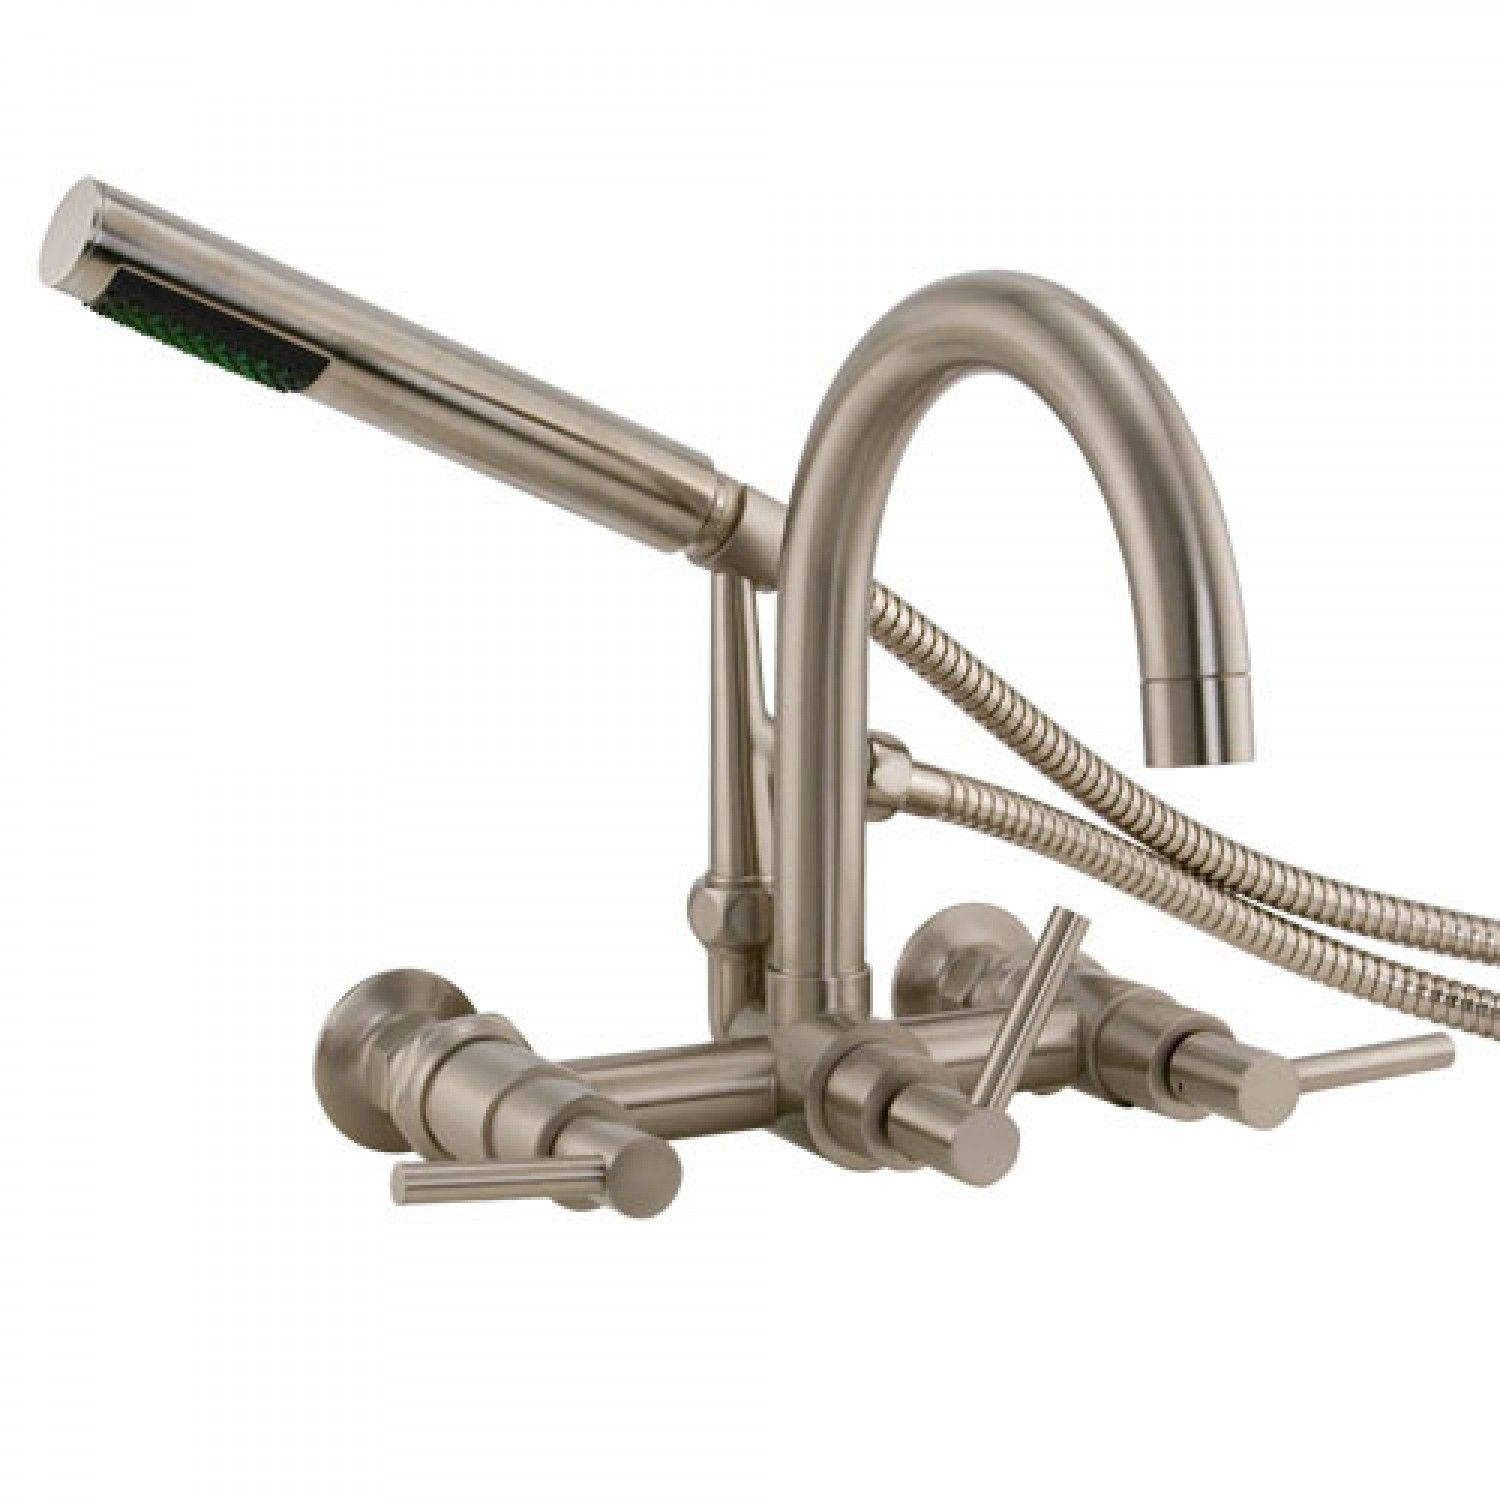 Sebastian Wall Mount Tub Faucet With Lever Handles And Wall